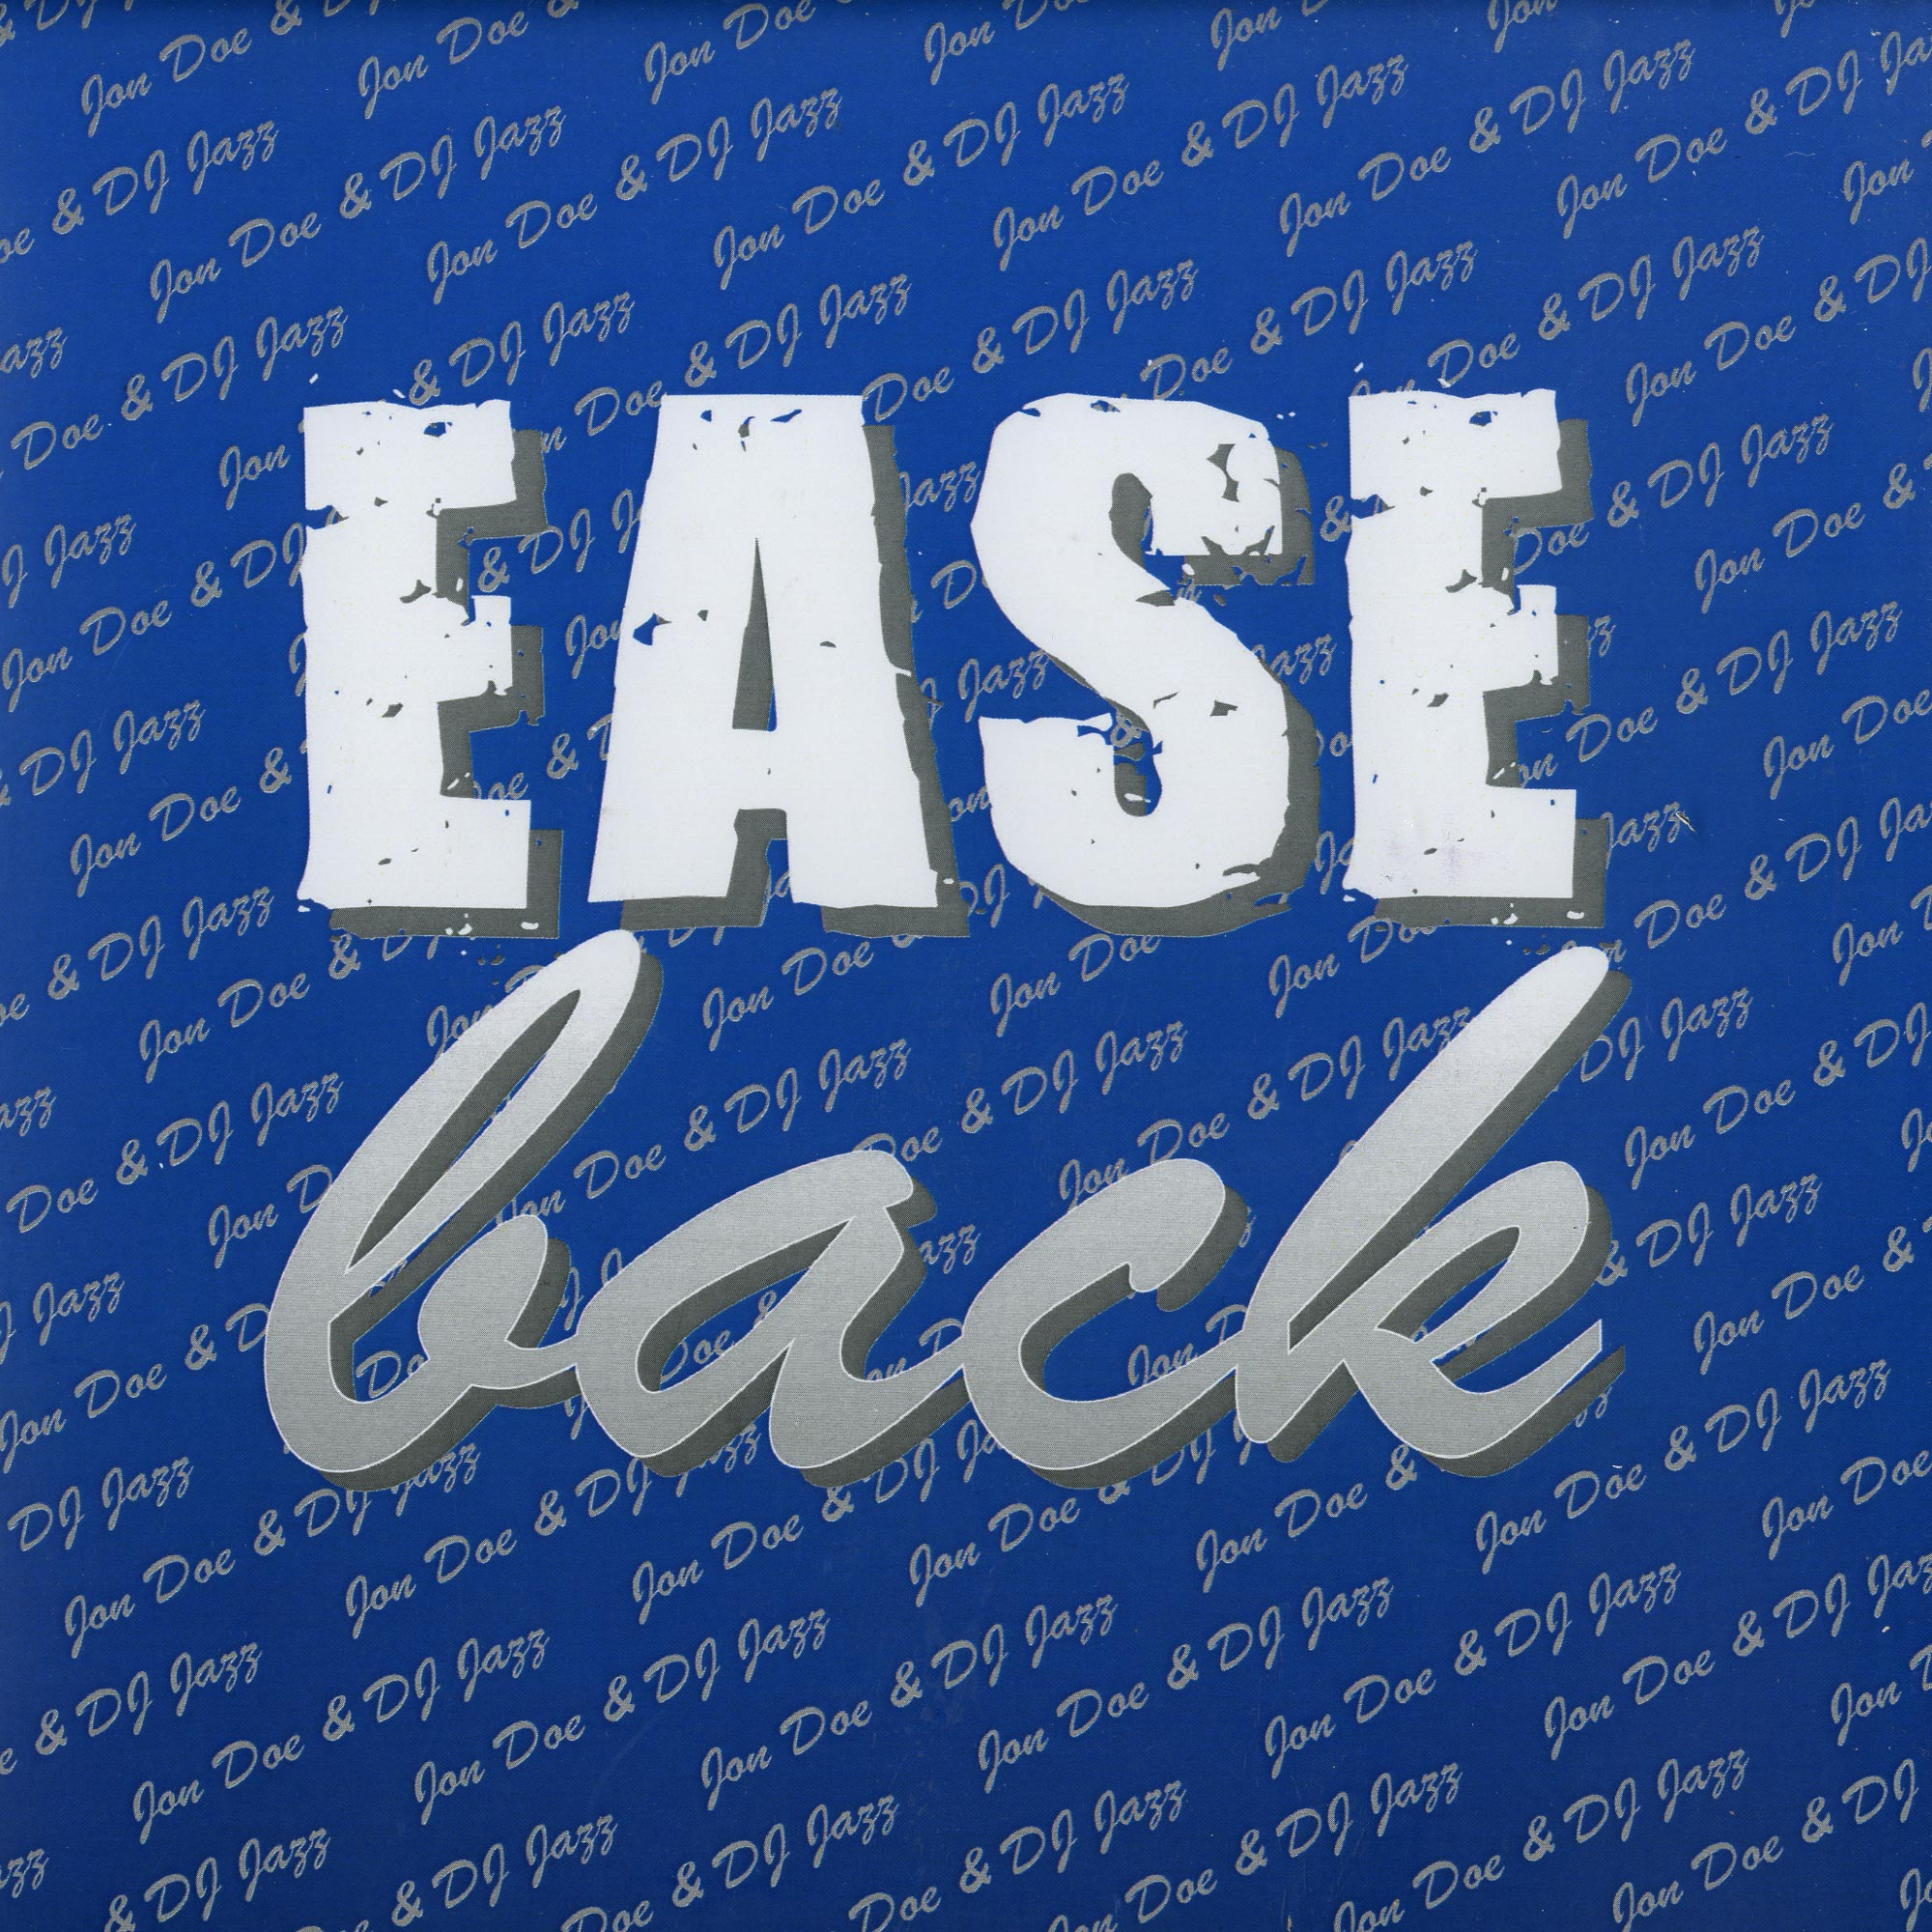 Jon Doe & DJ Jazz - EASE BACK